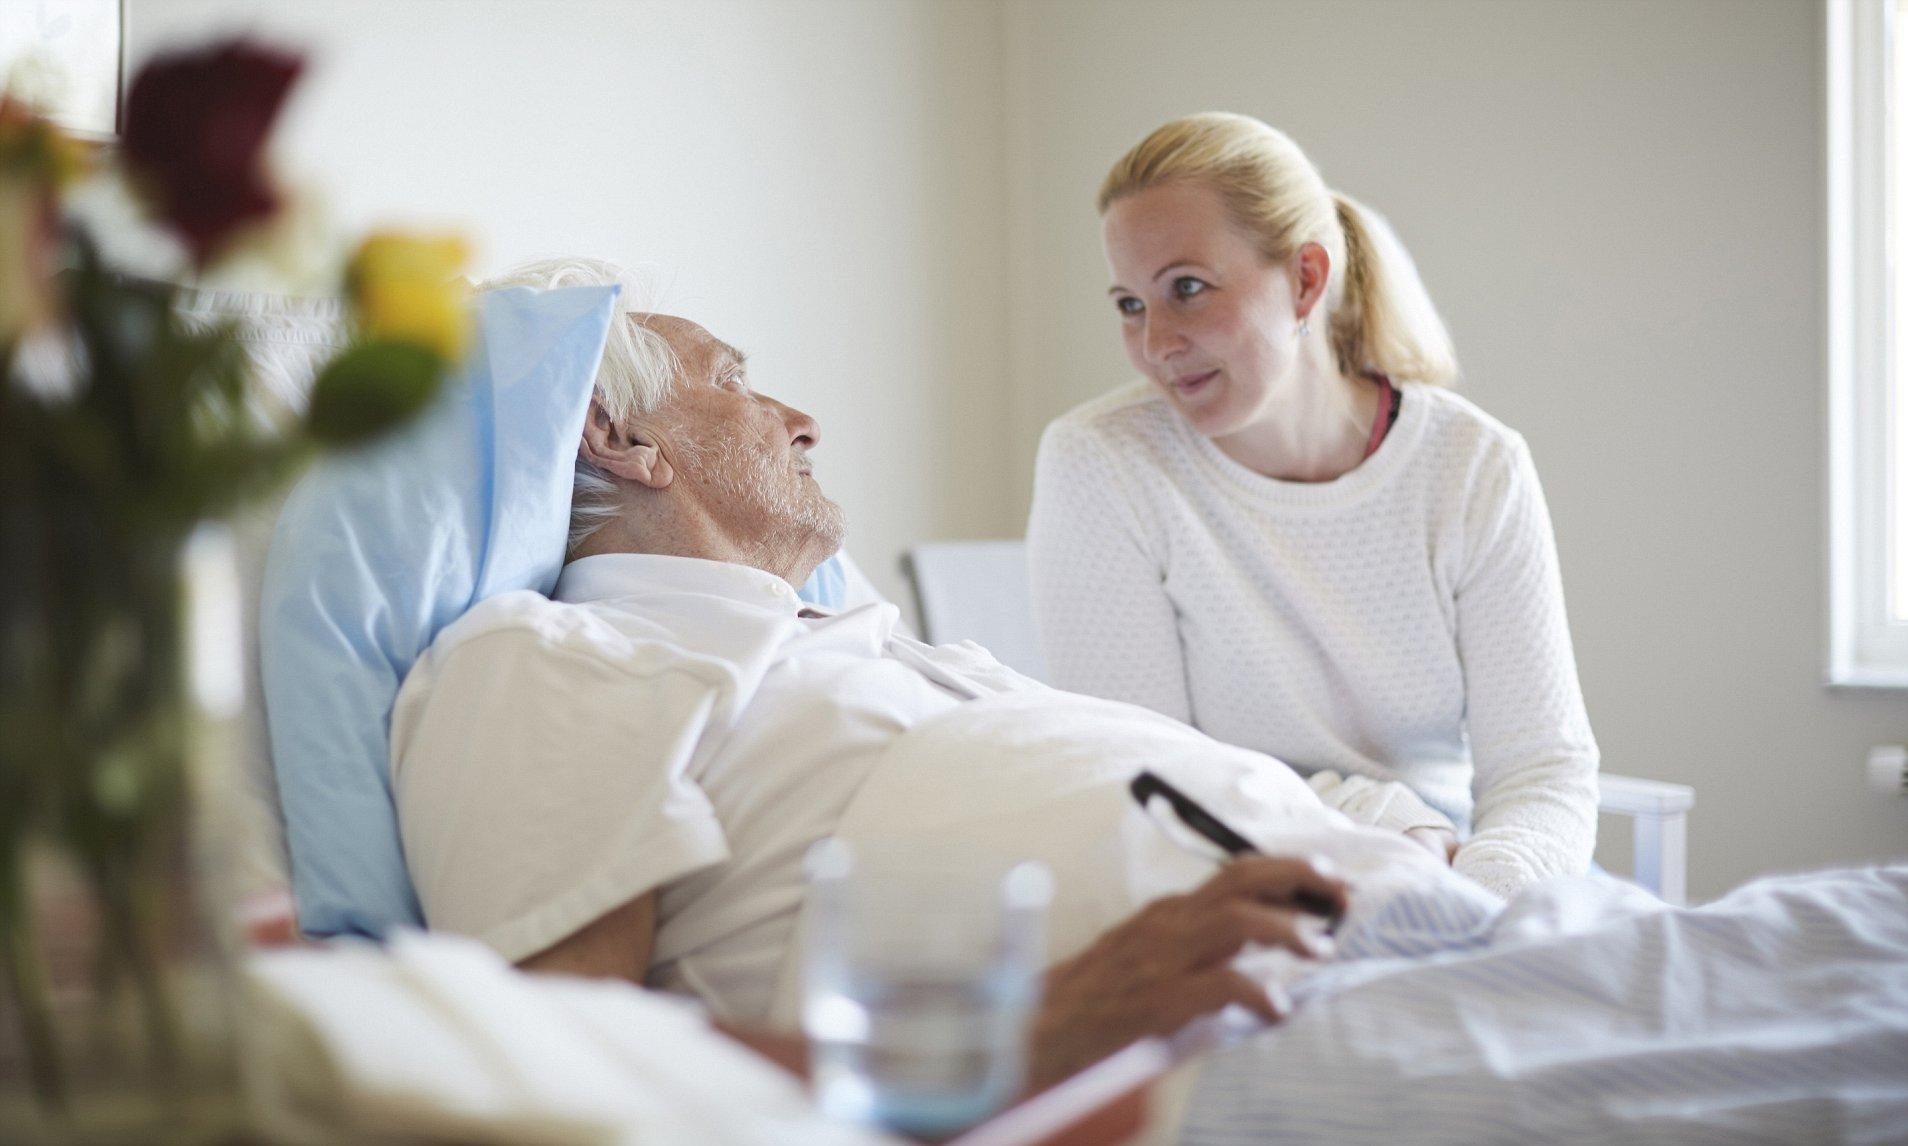 How to Care for a Bedridden Patient - Things You Need to Know